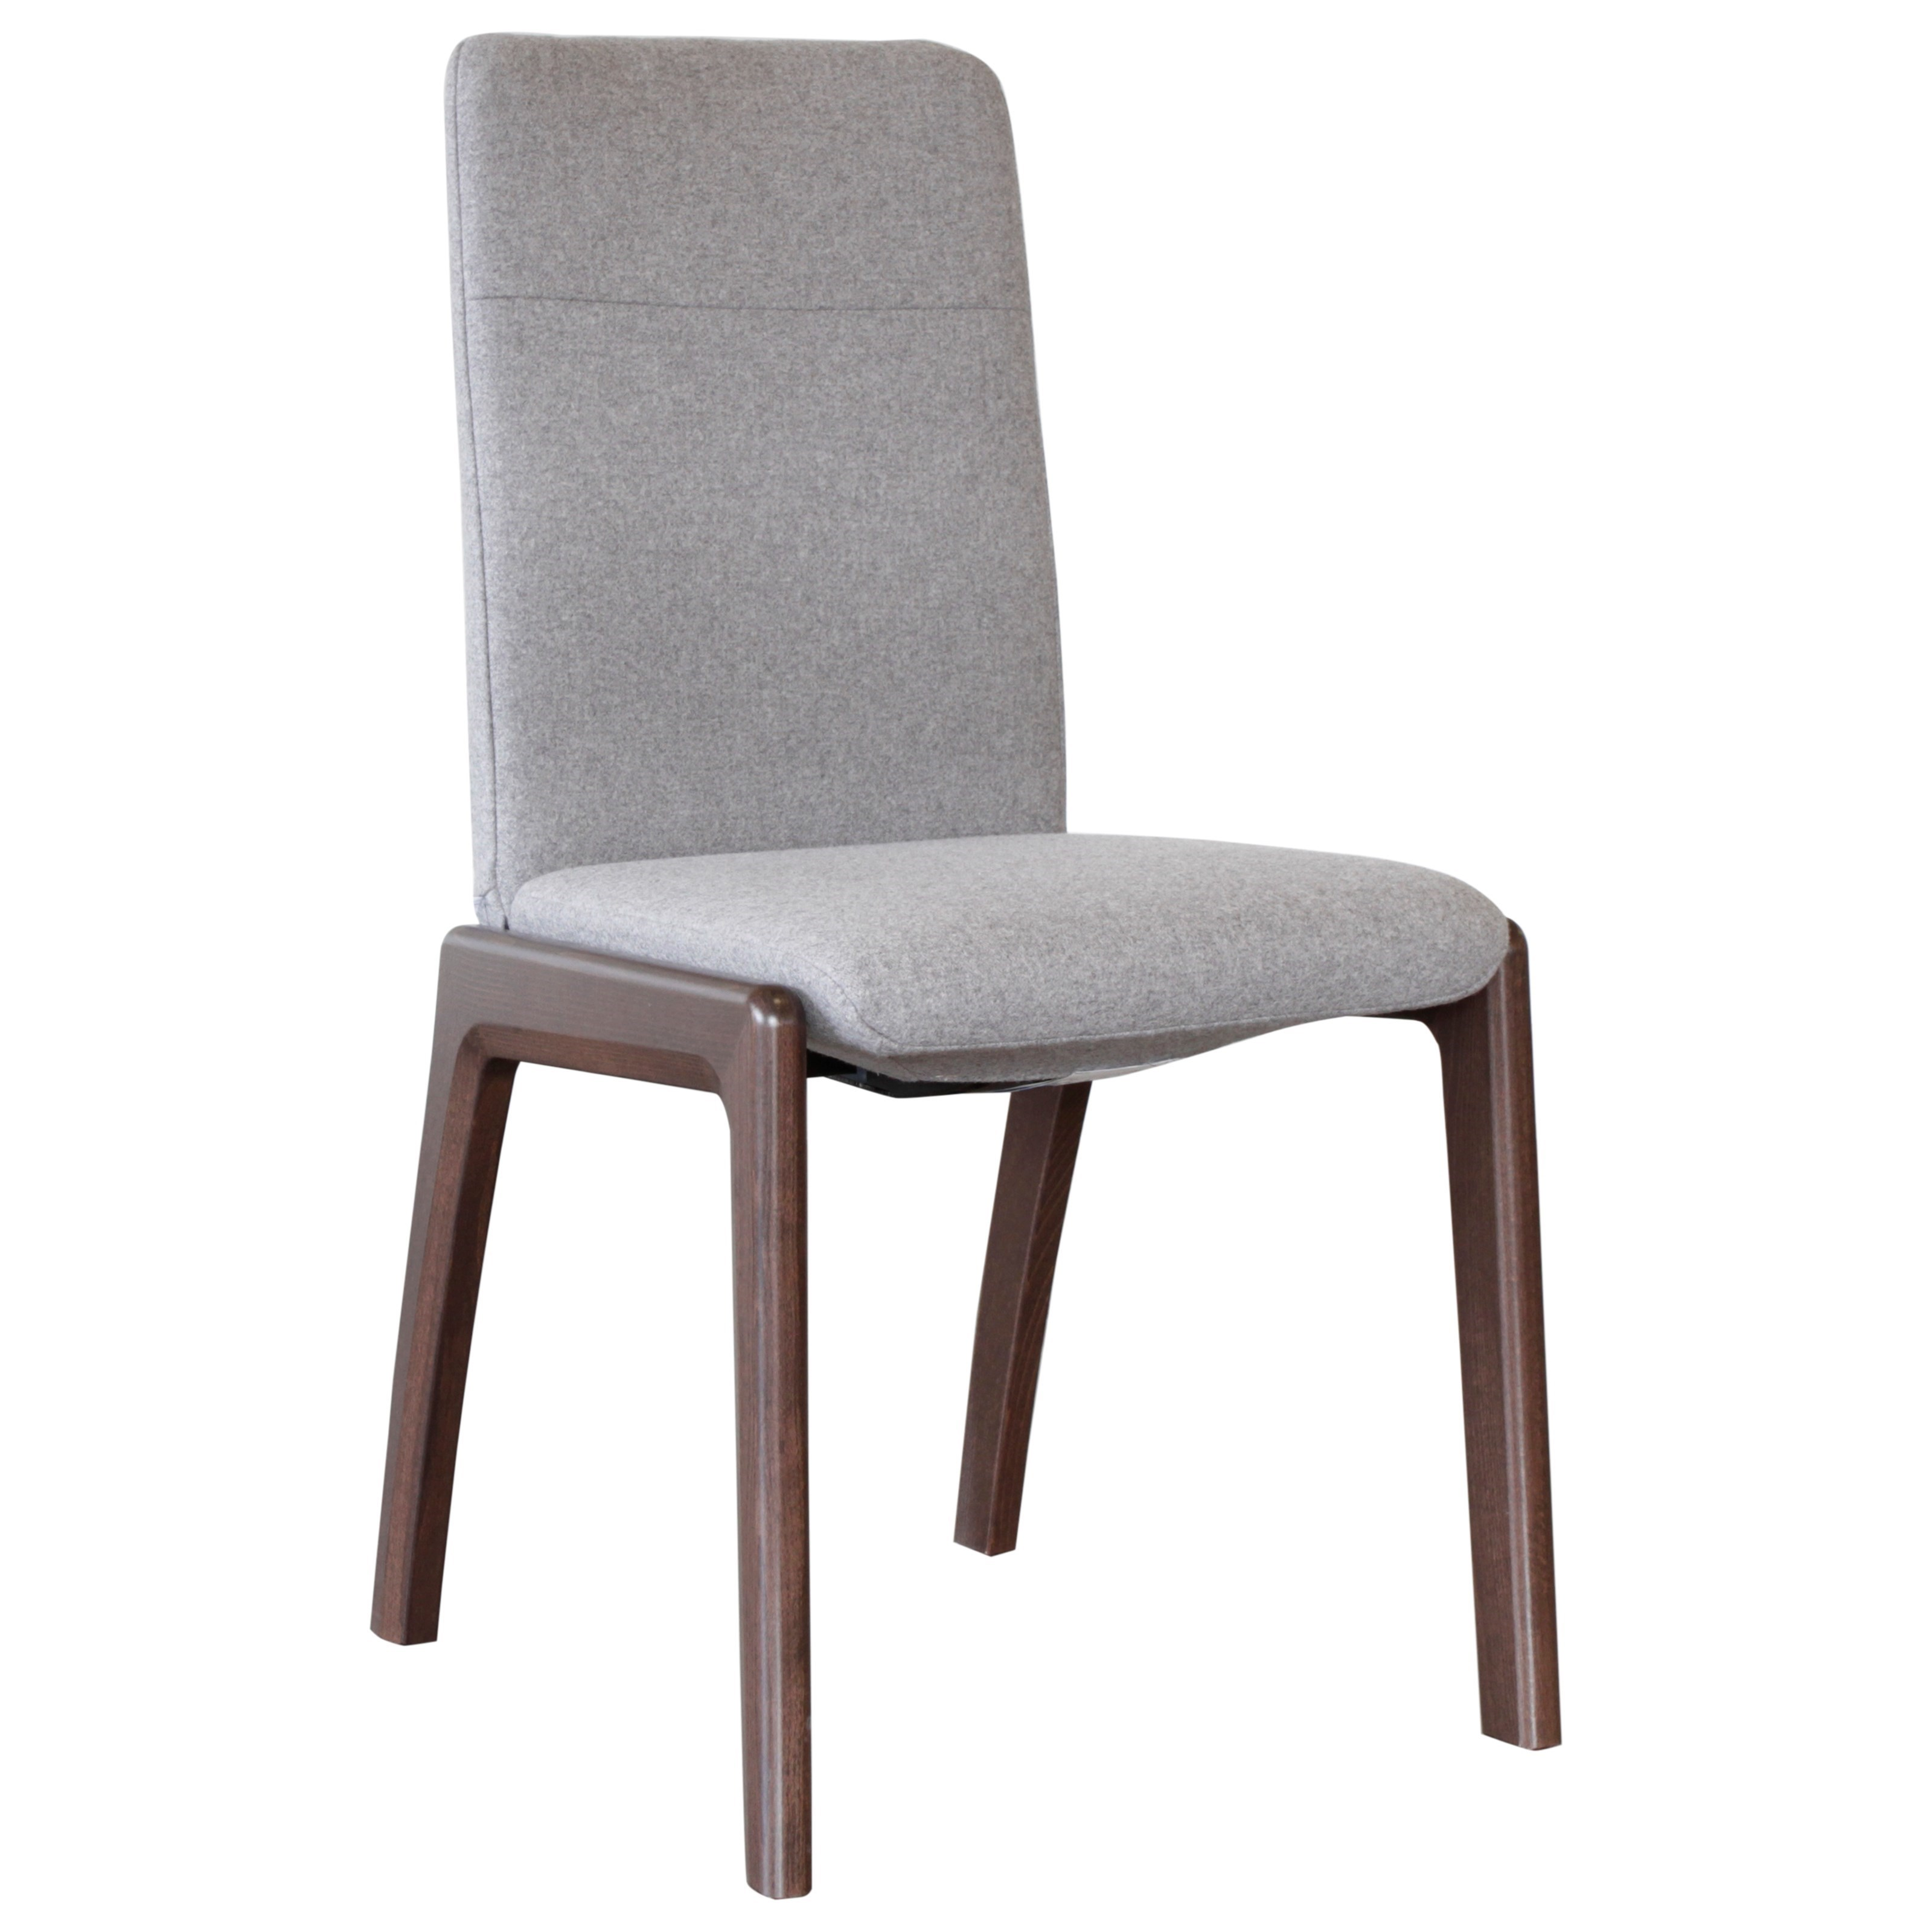 Chilli Dining Chair by Stressless at Red Knot